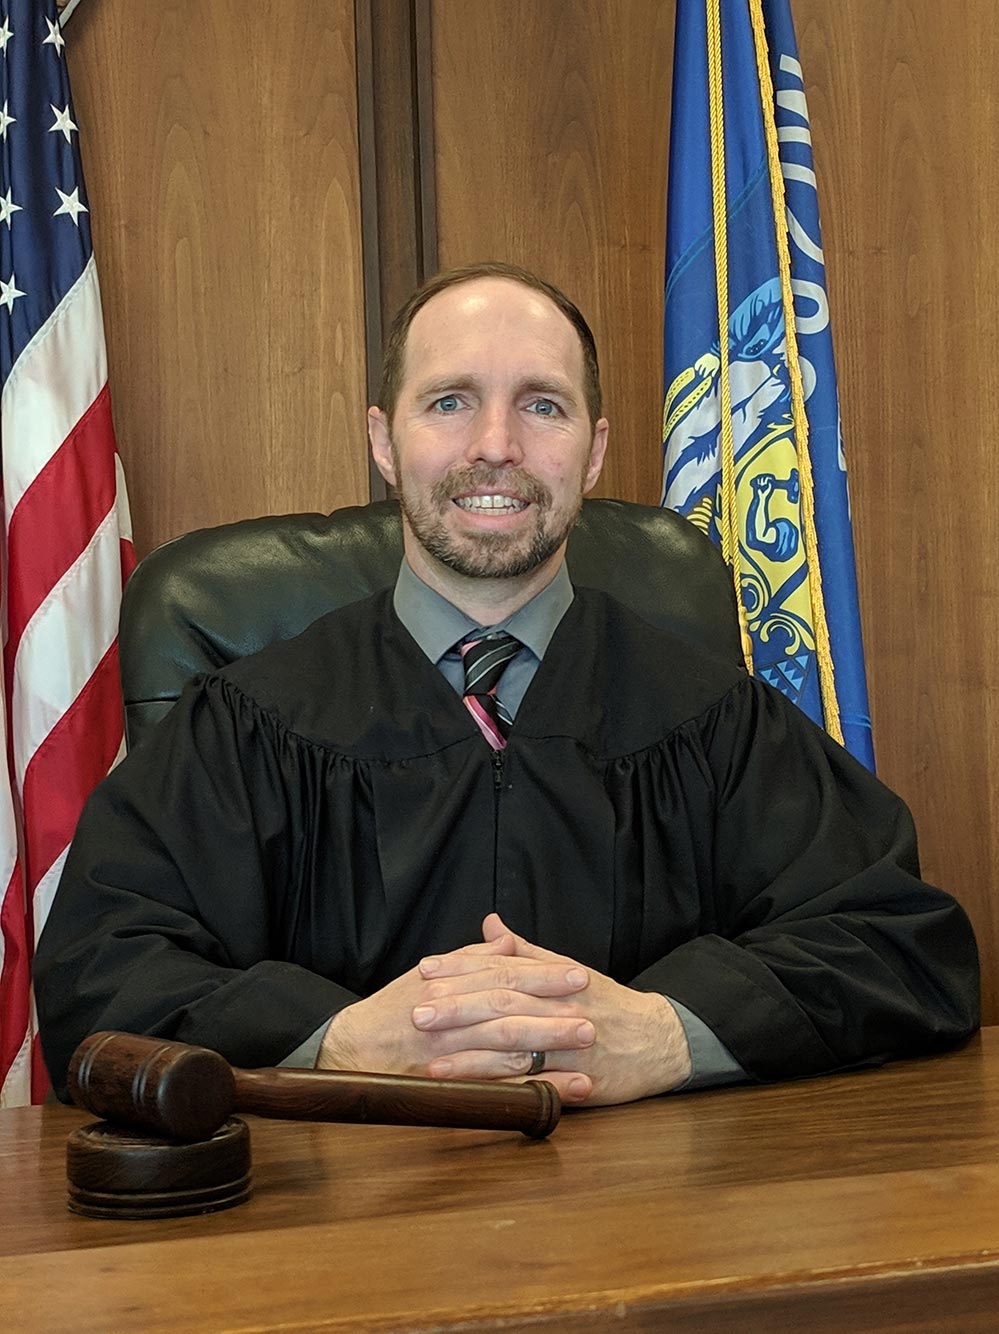 Judge Paul Bugenhagen Jr secures ballot access for WI Court of Appeals District II election